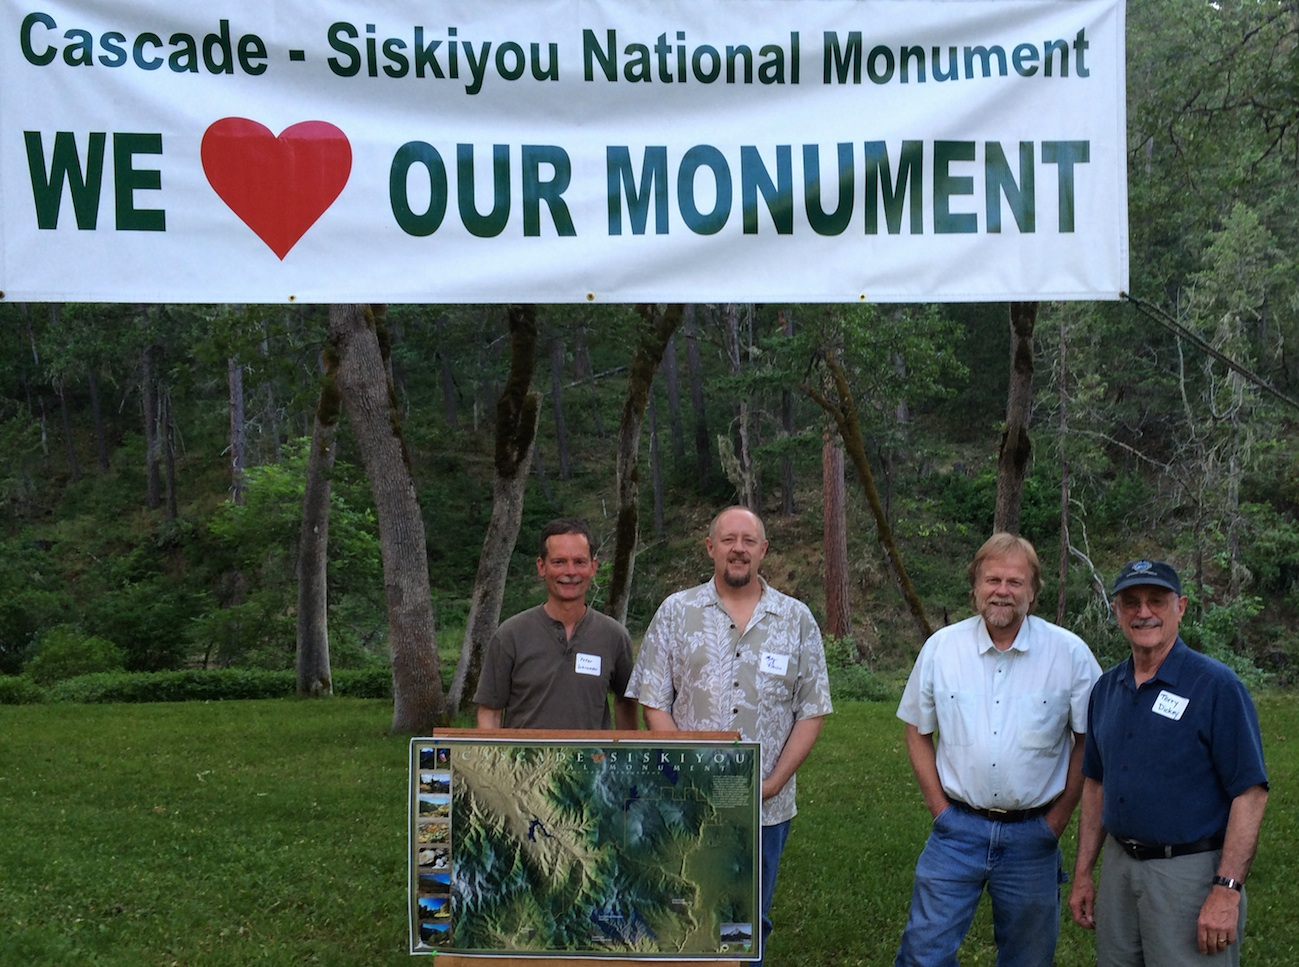 Dave Willis (2nd right) welcomes Friends of Cascade-Siskiyou National Monument Board Members Peter Schroeder, Marty Peterson and Terry Dickey at the 15th Anniversary gathering. Friends of CSNM 2015 Photo.